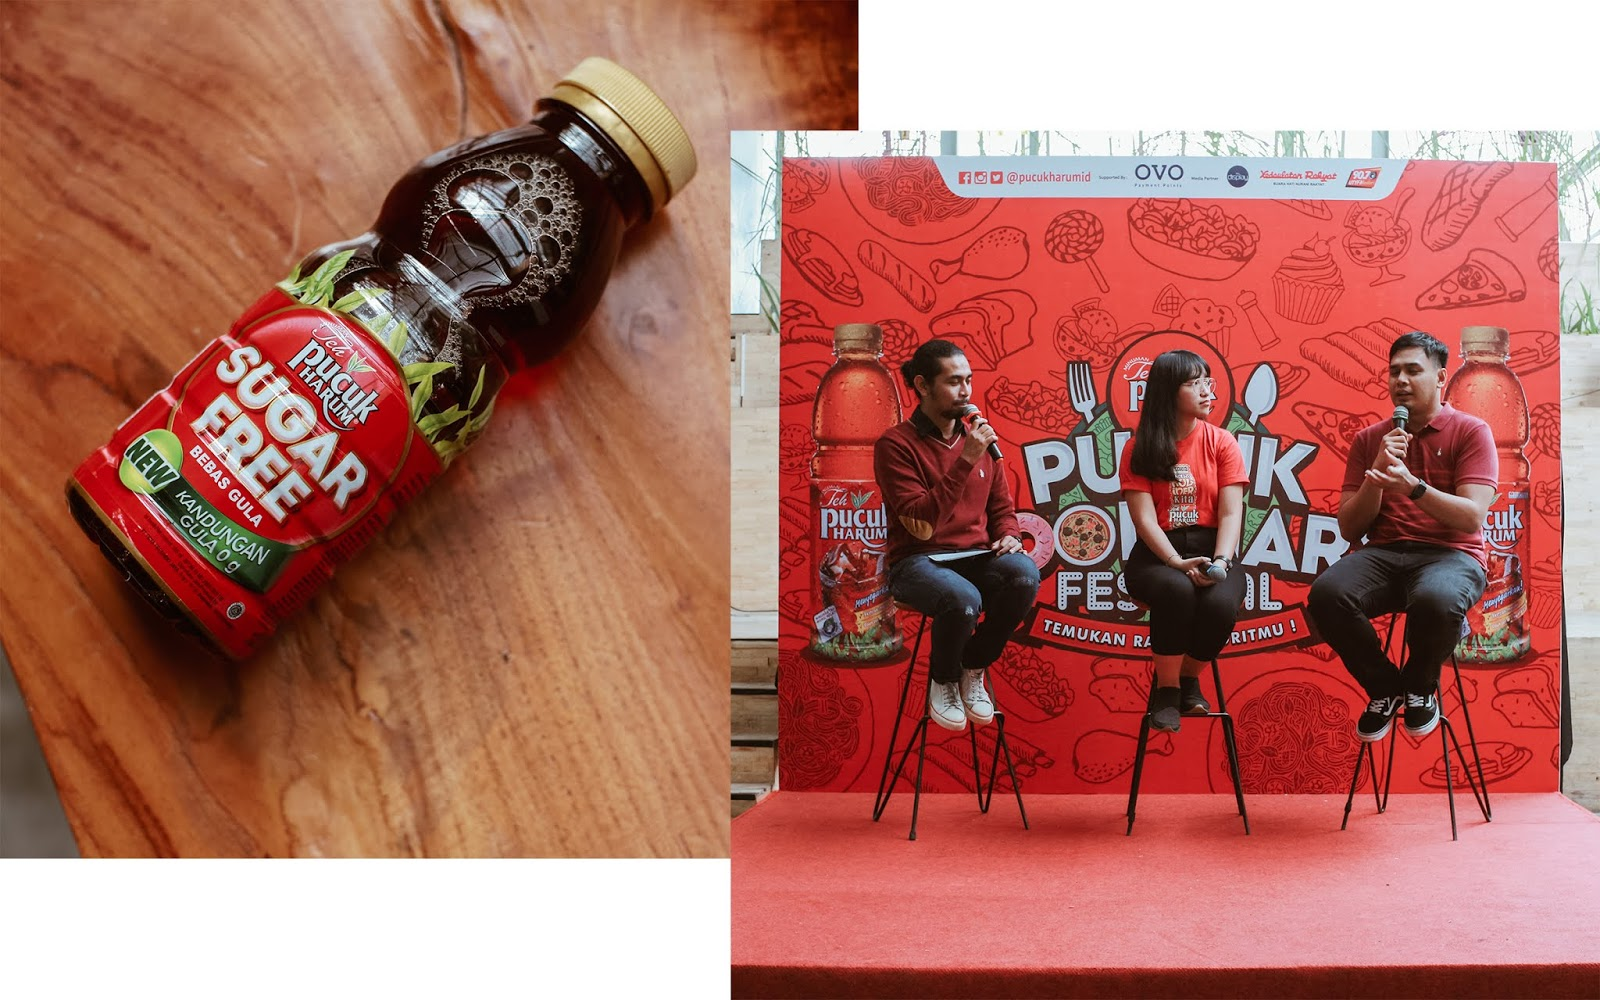 teh pucuk harum pucuk coolinary festival